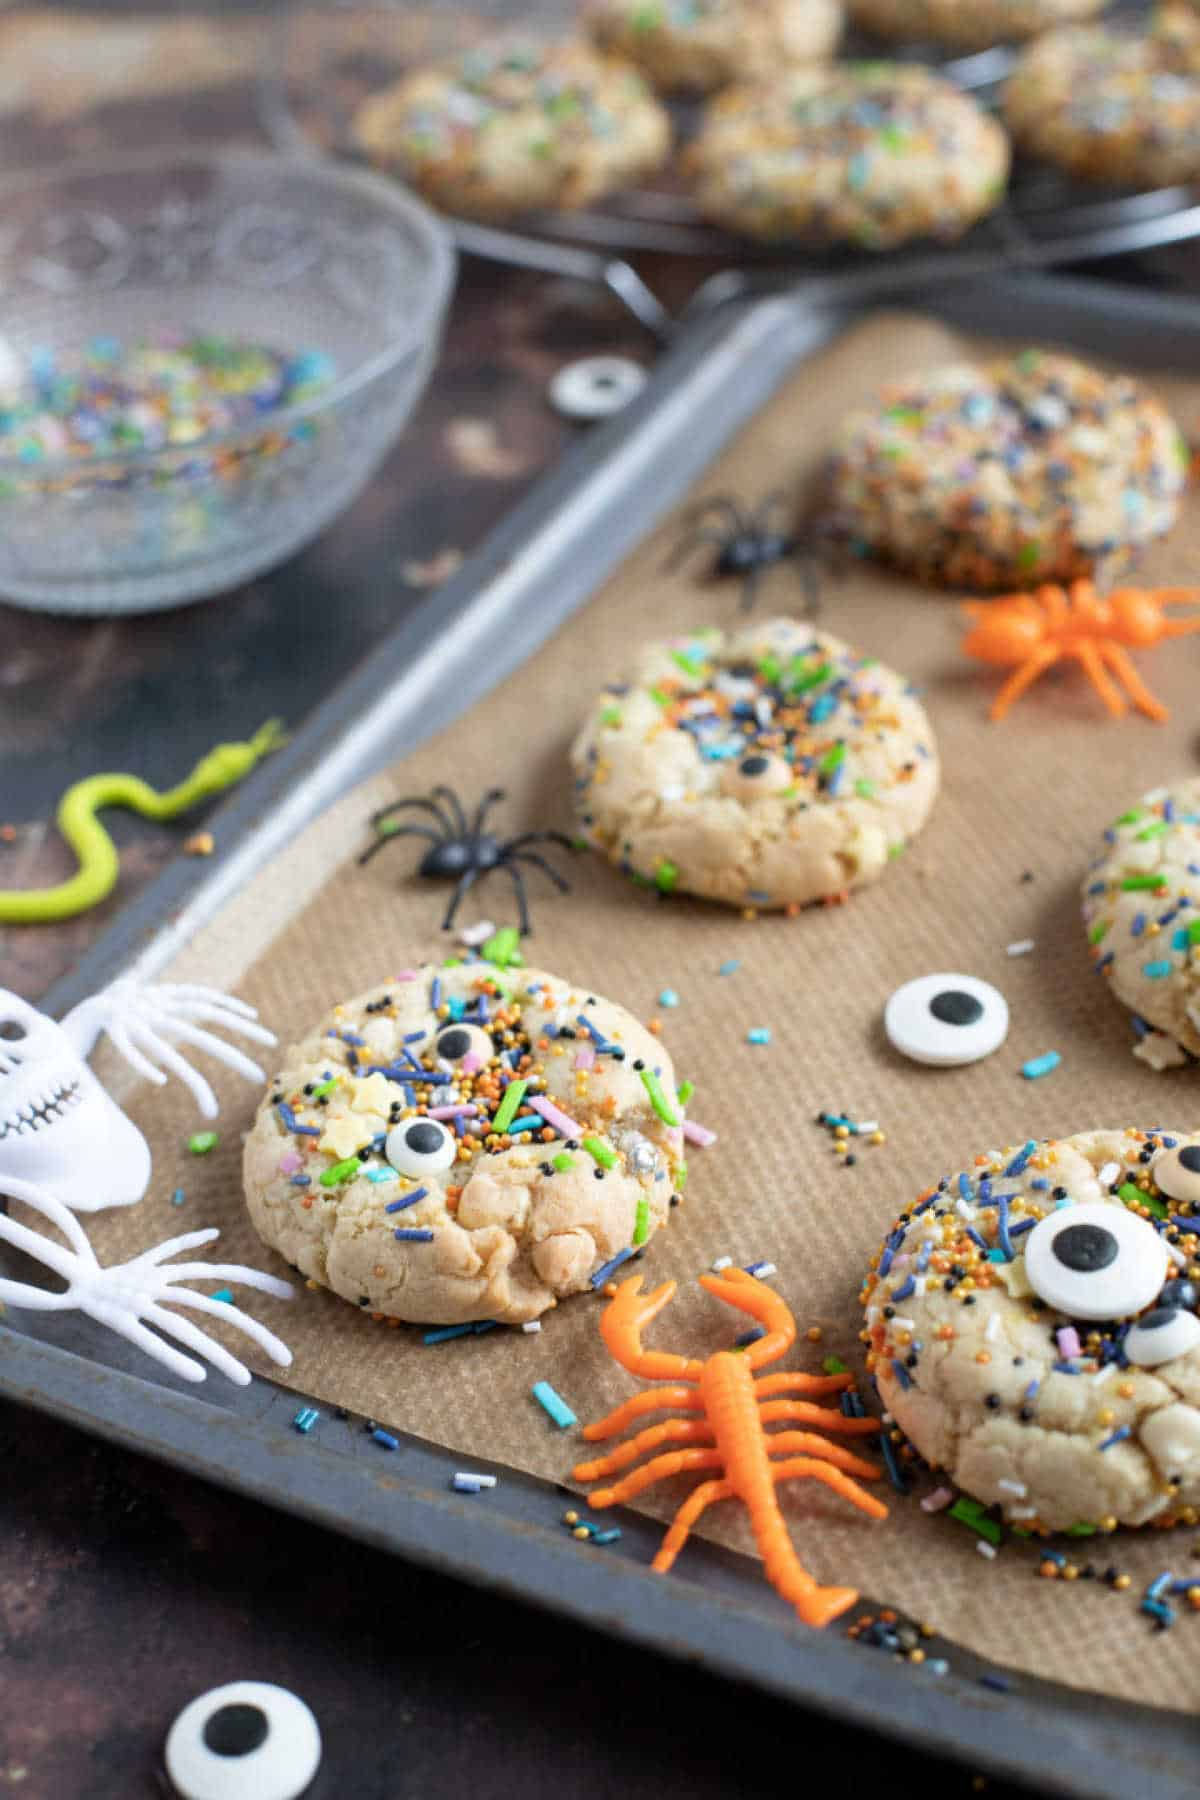 Halloween sprinkle cookies on a baking tray.